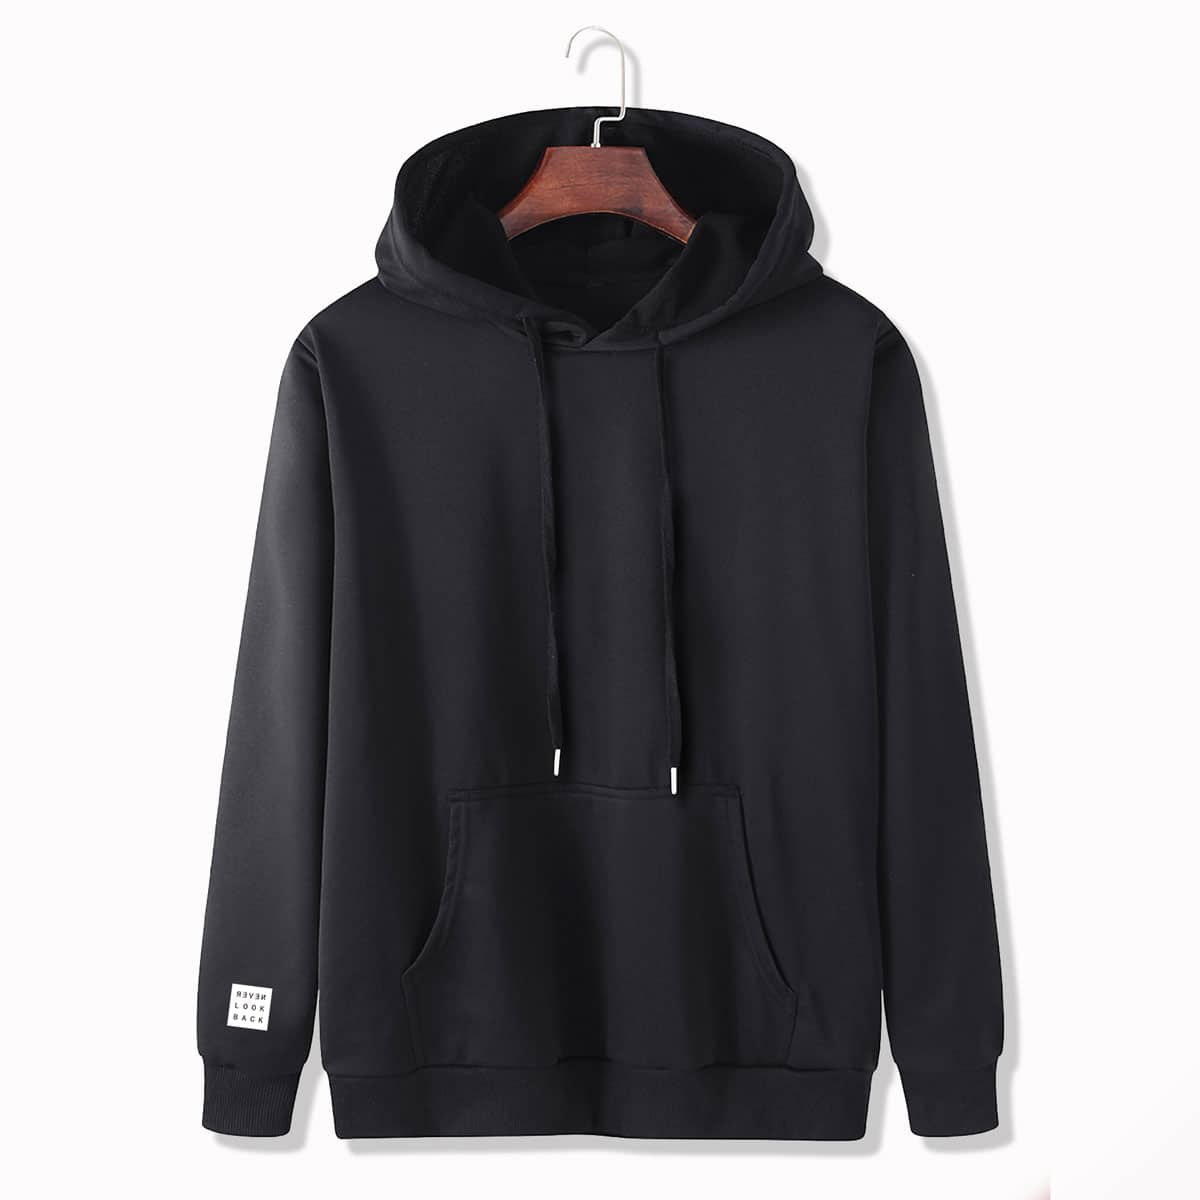 SHEIN / Men Patched Kangaroo Pocket Drawstring Hoodie